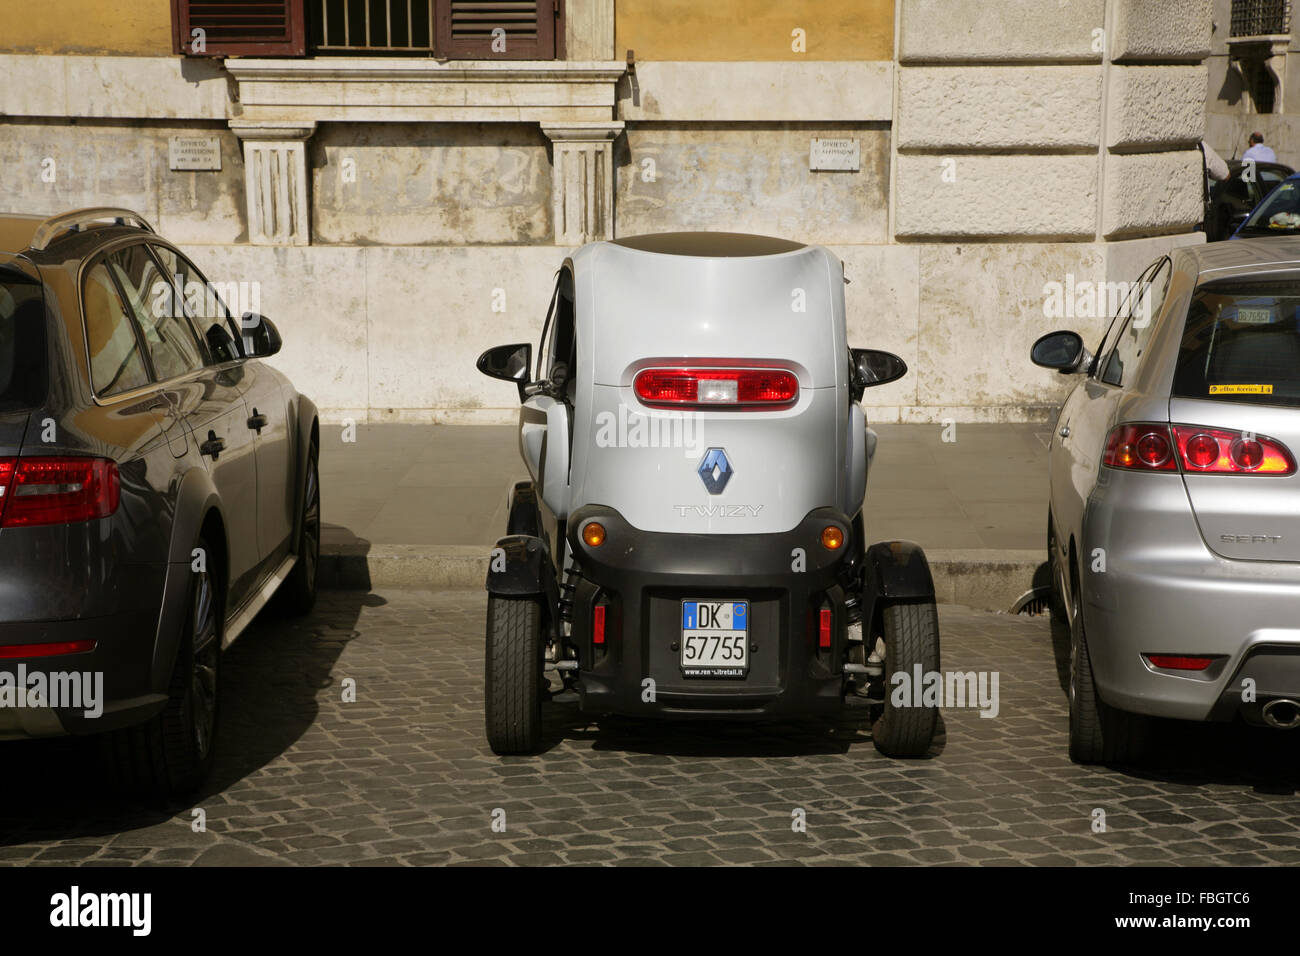 Electric Renault Twizy city car parked in Rome, Italy. Stock Photo